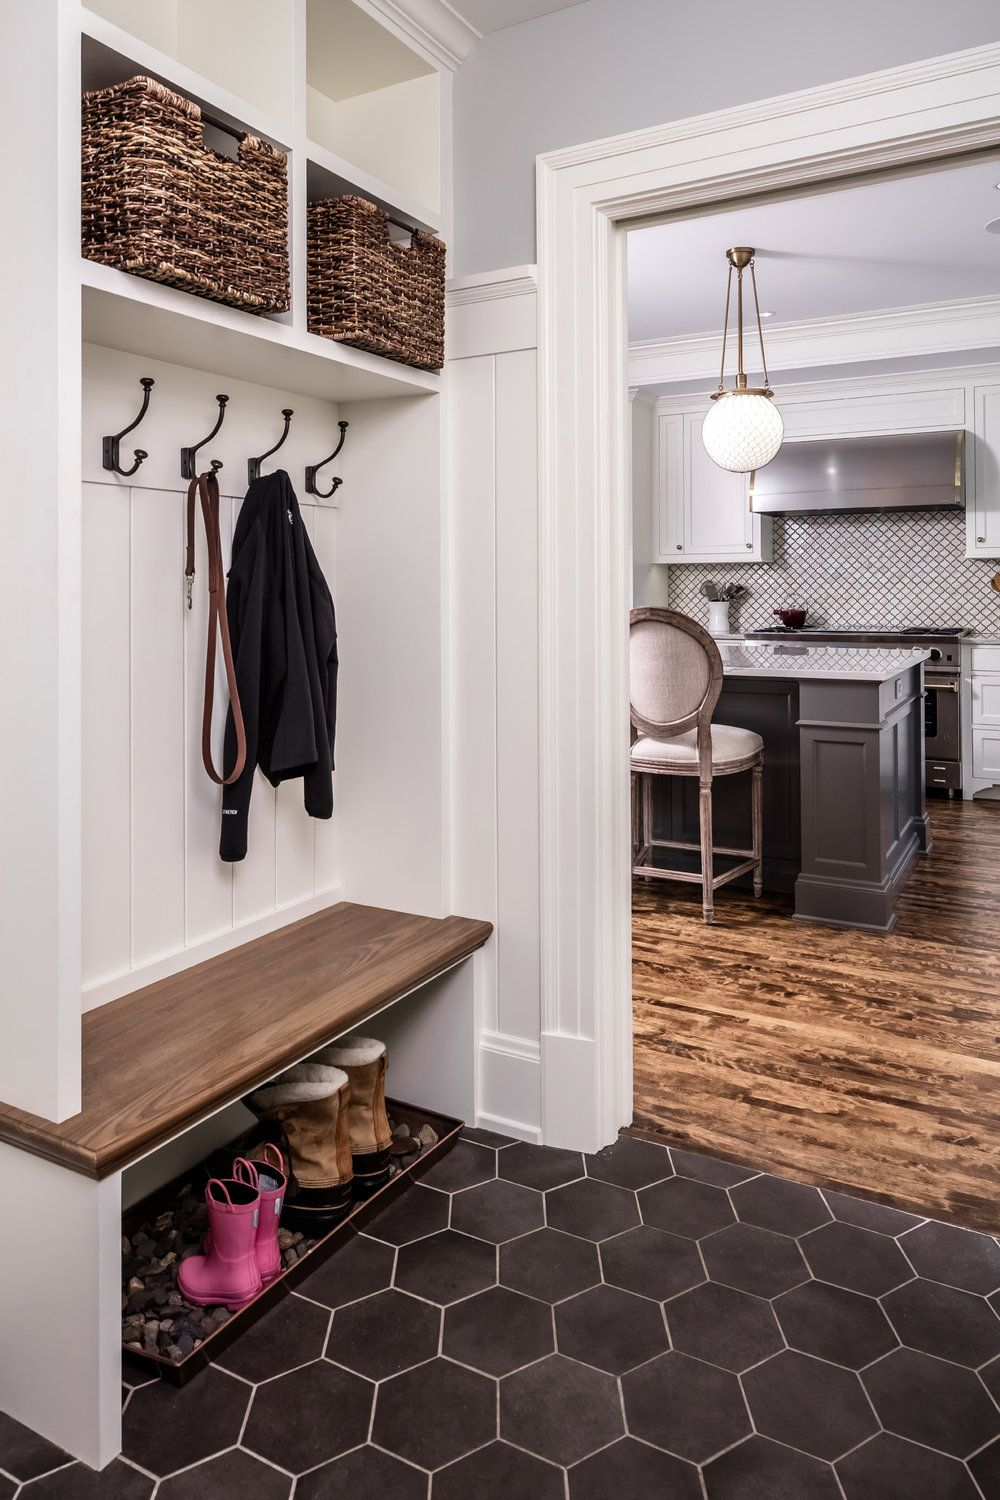 Mud Room Bench With Shoe Storage Underneath Hooks High Baskets For Additional